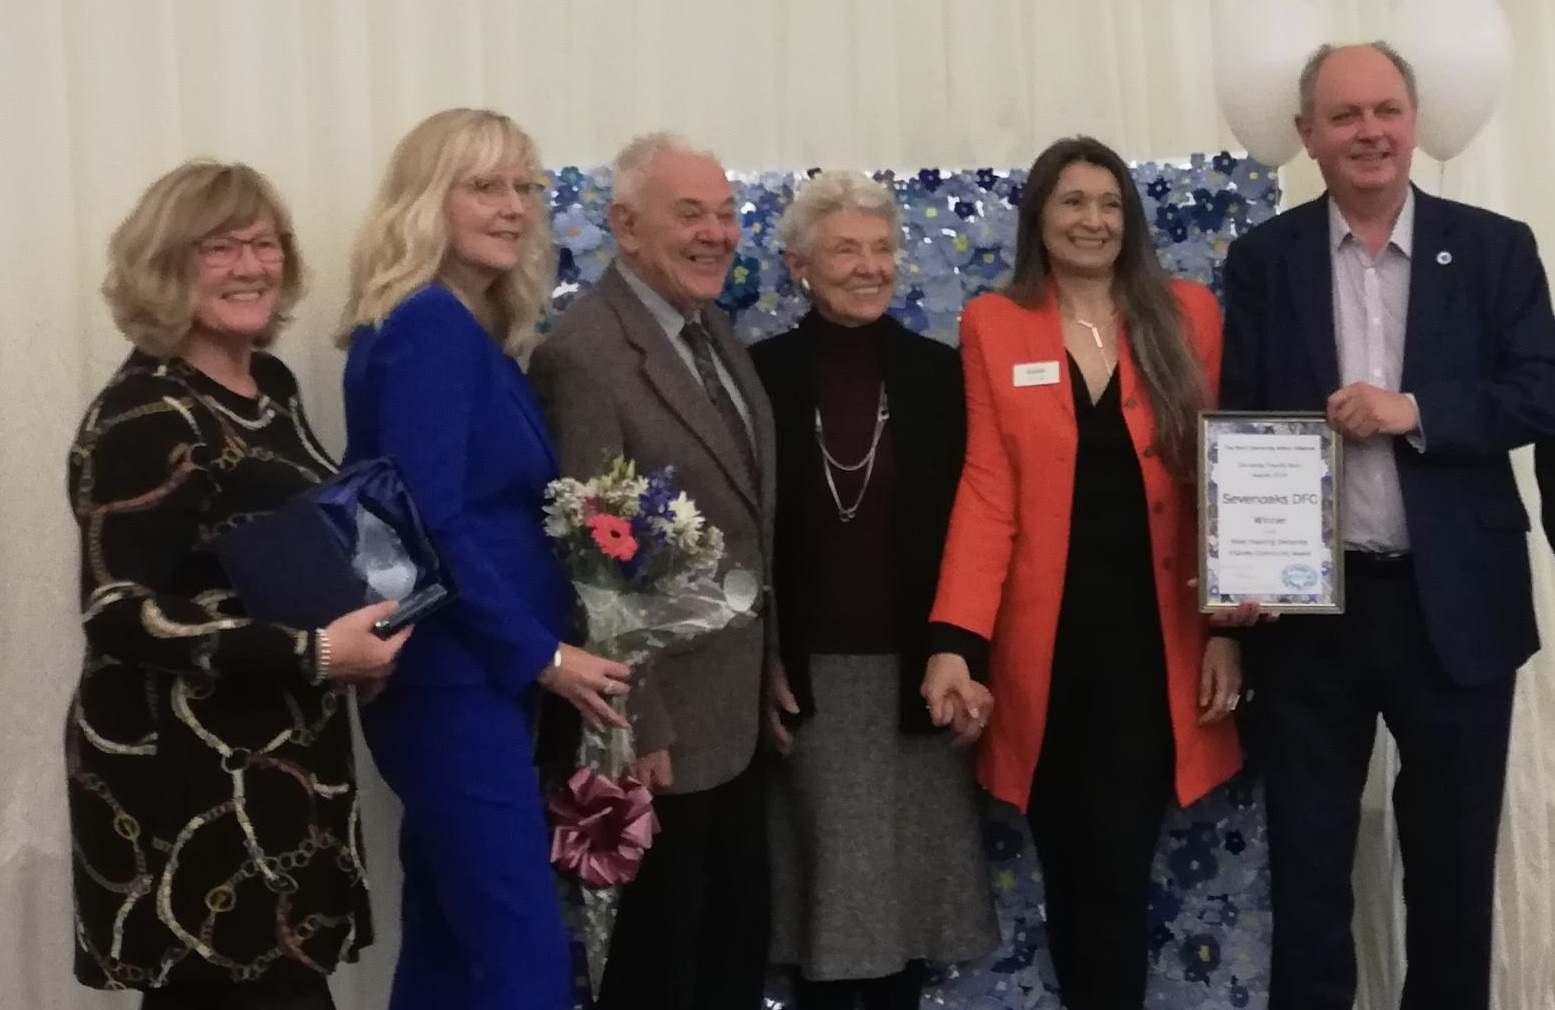 SADFC - Most Inspiring Dementia Friendly Community